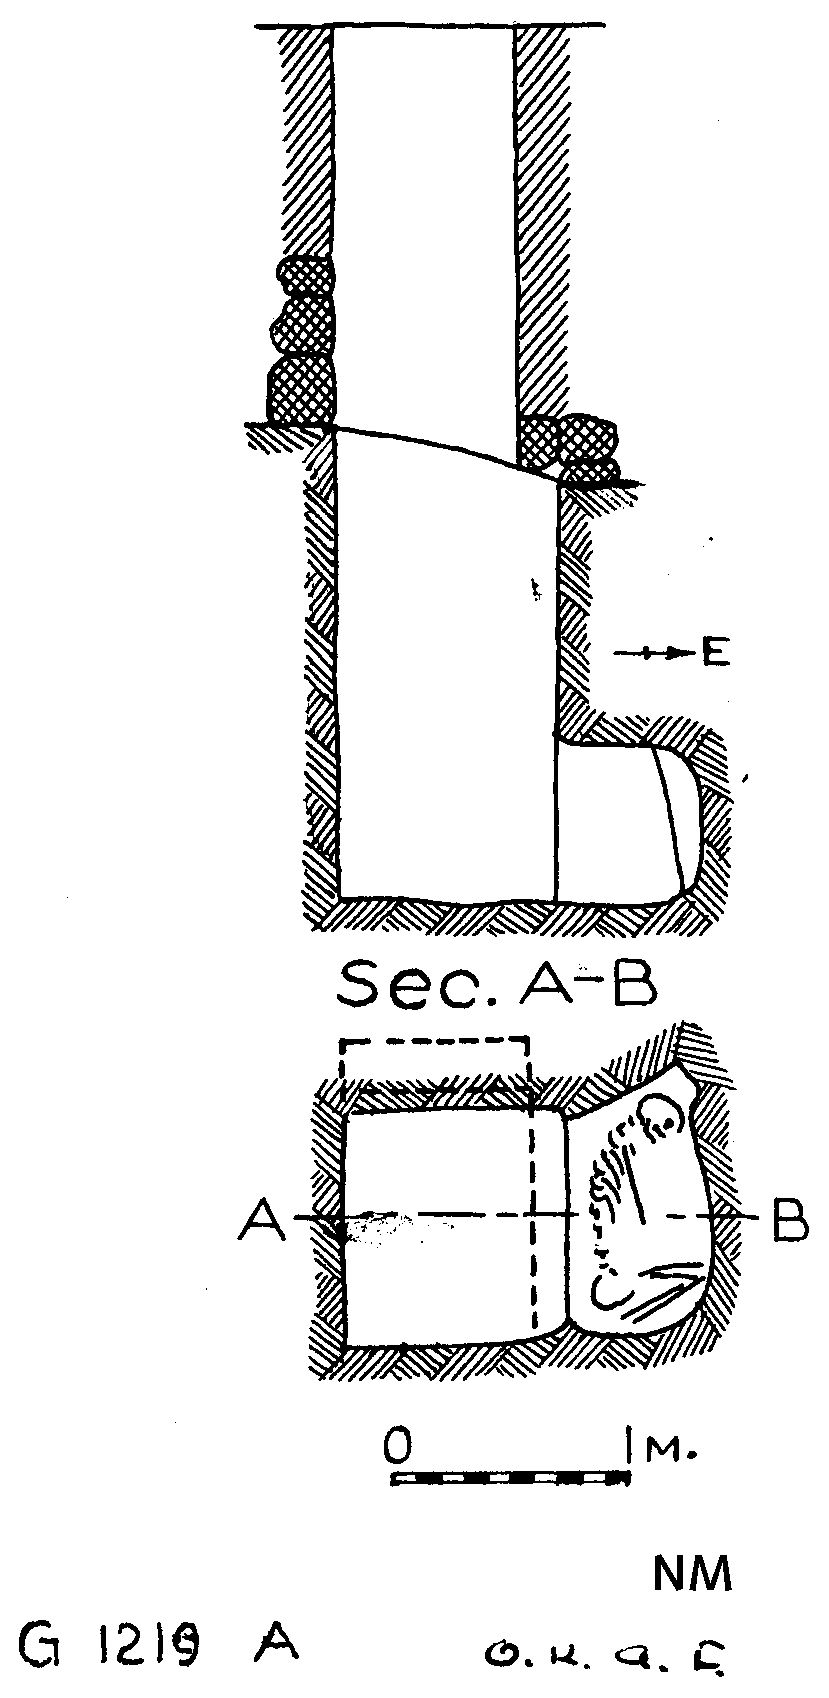 Maps and plans: G 1219, Shaft A